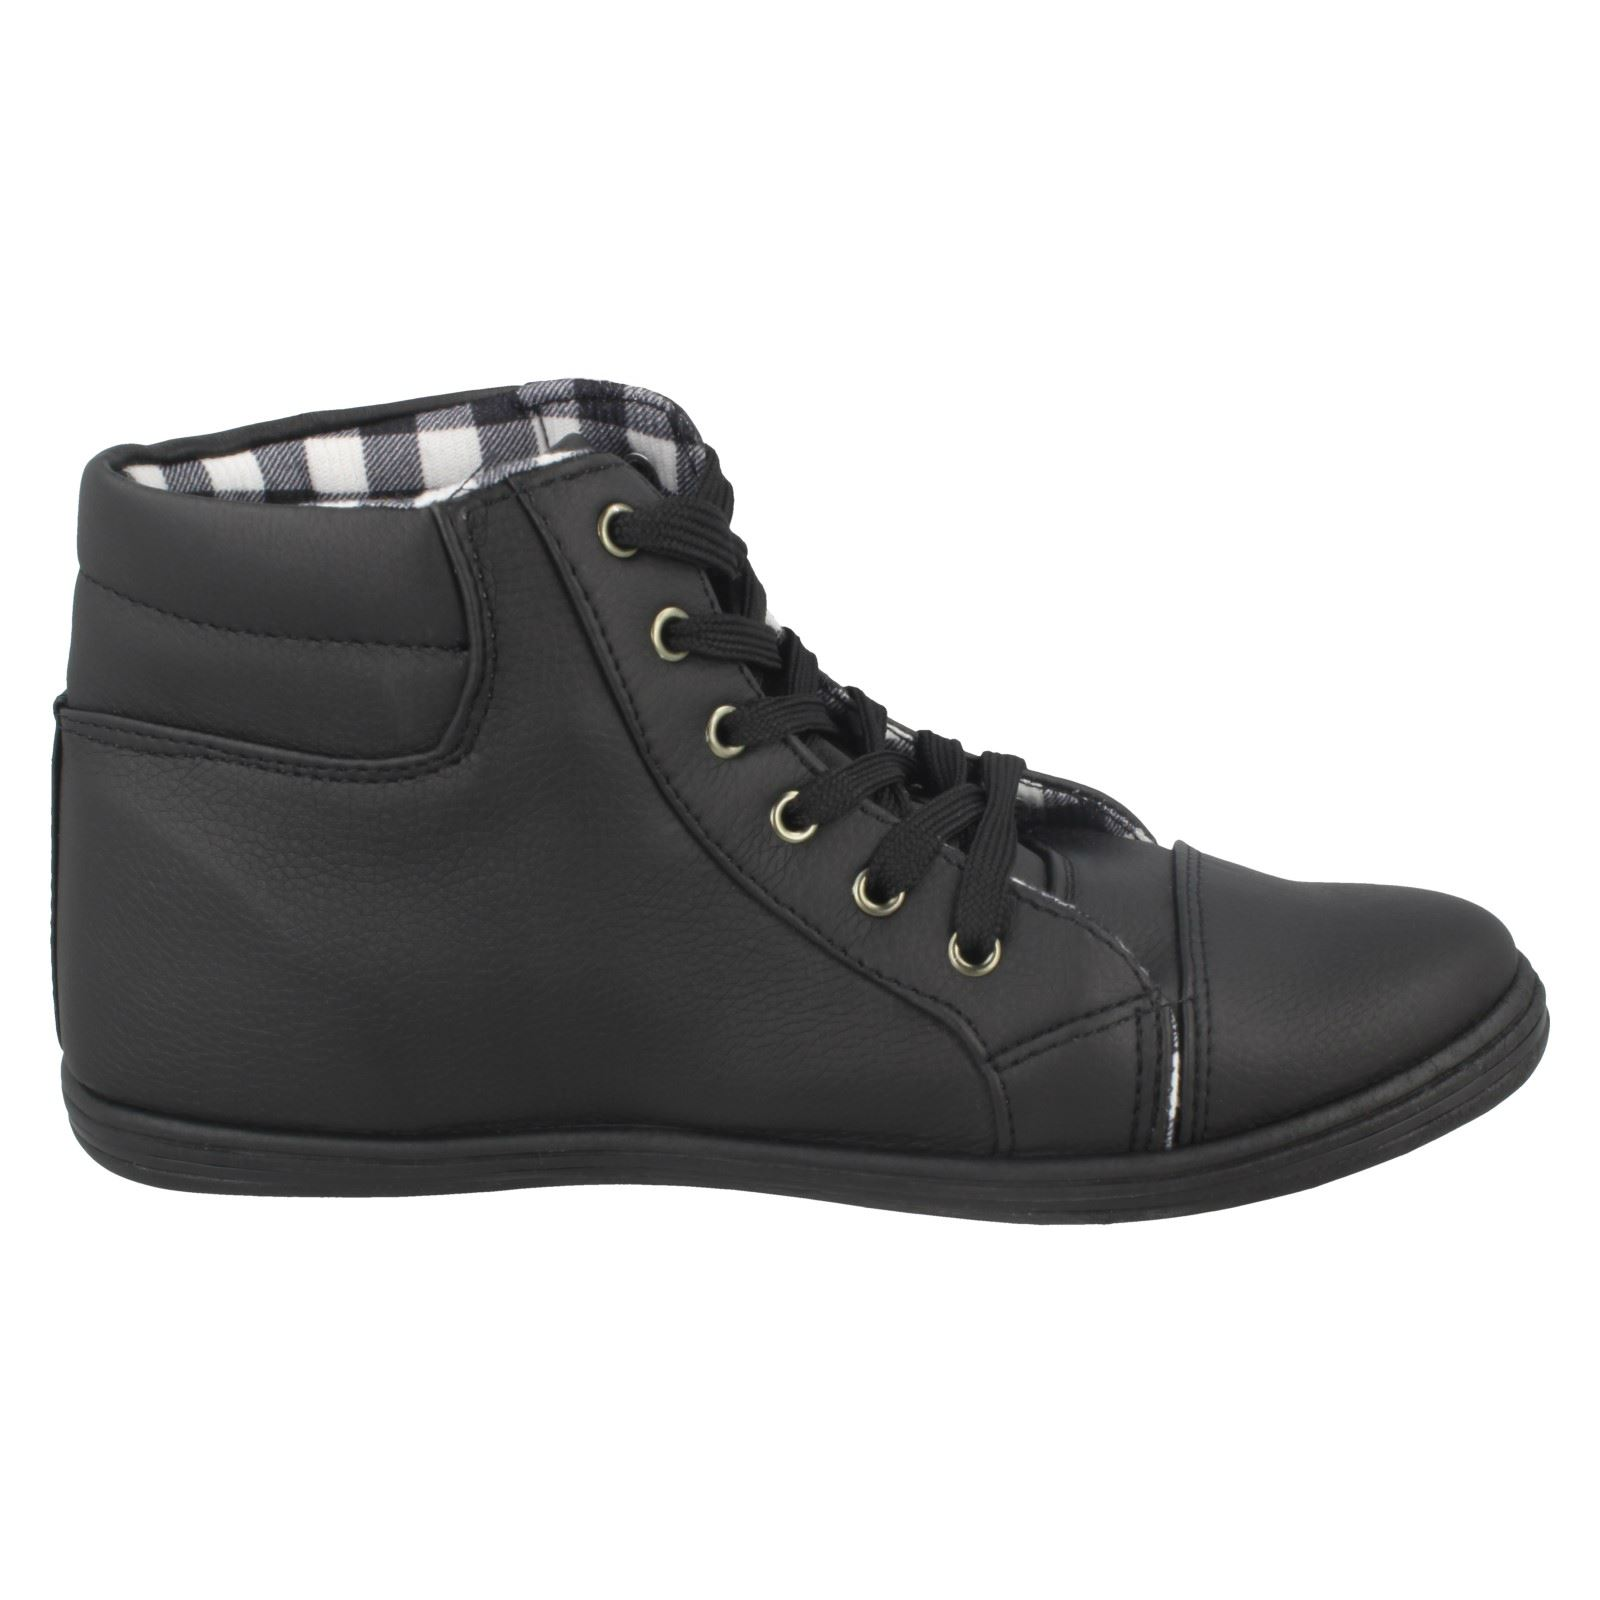 Ladies Spot On Studded Lace Up Ankle Boots